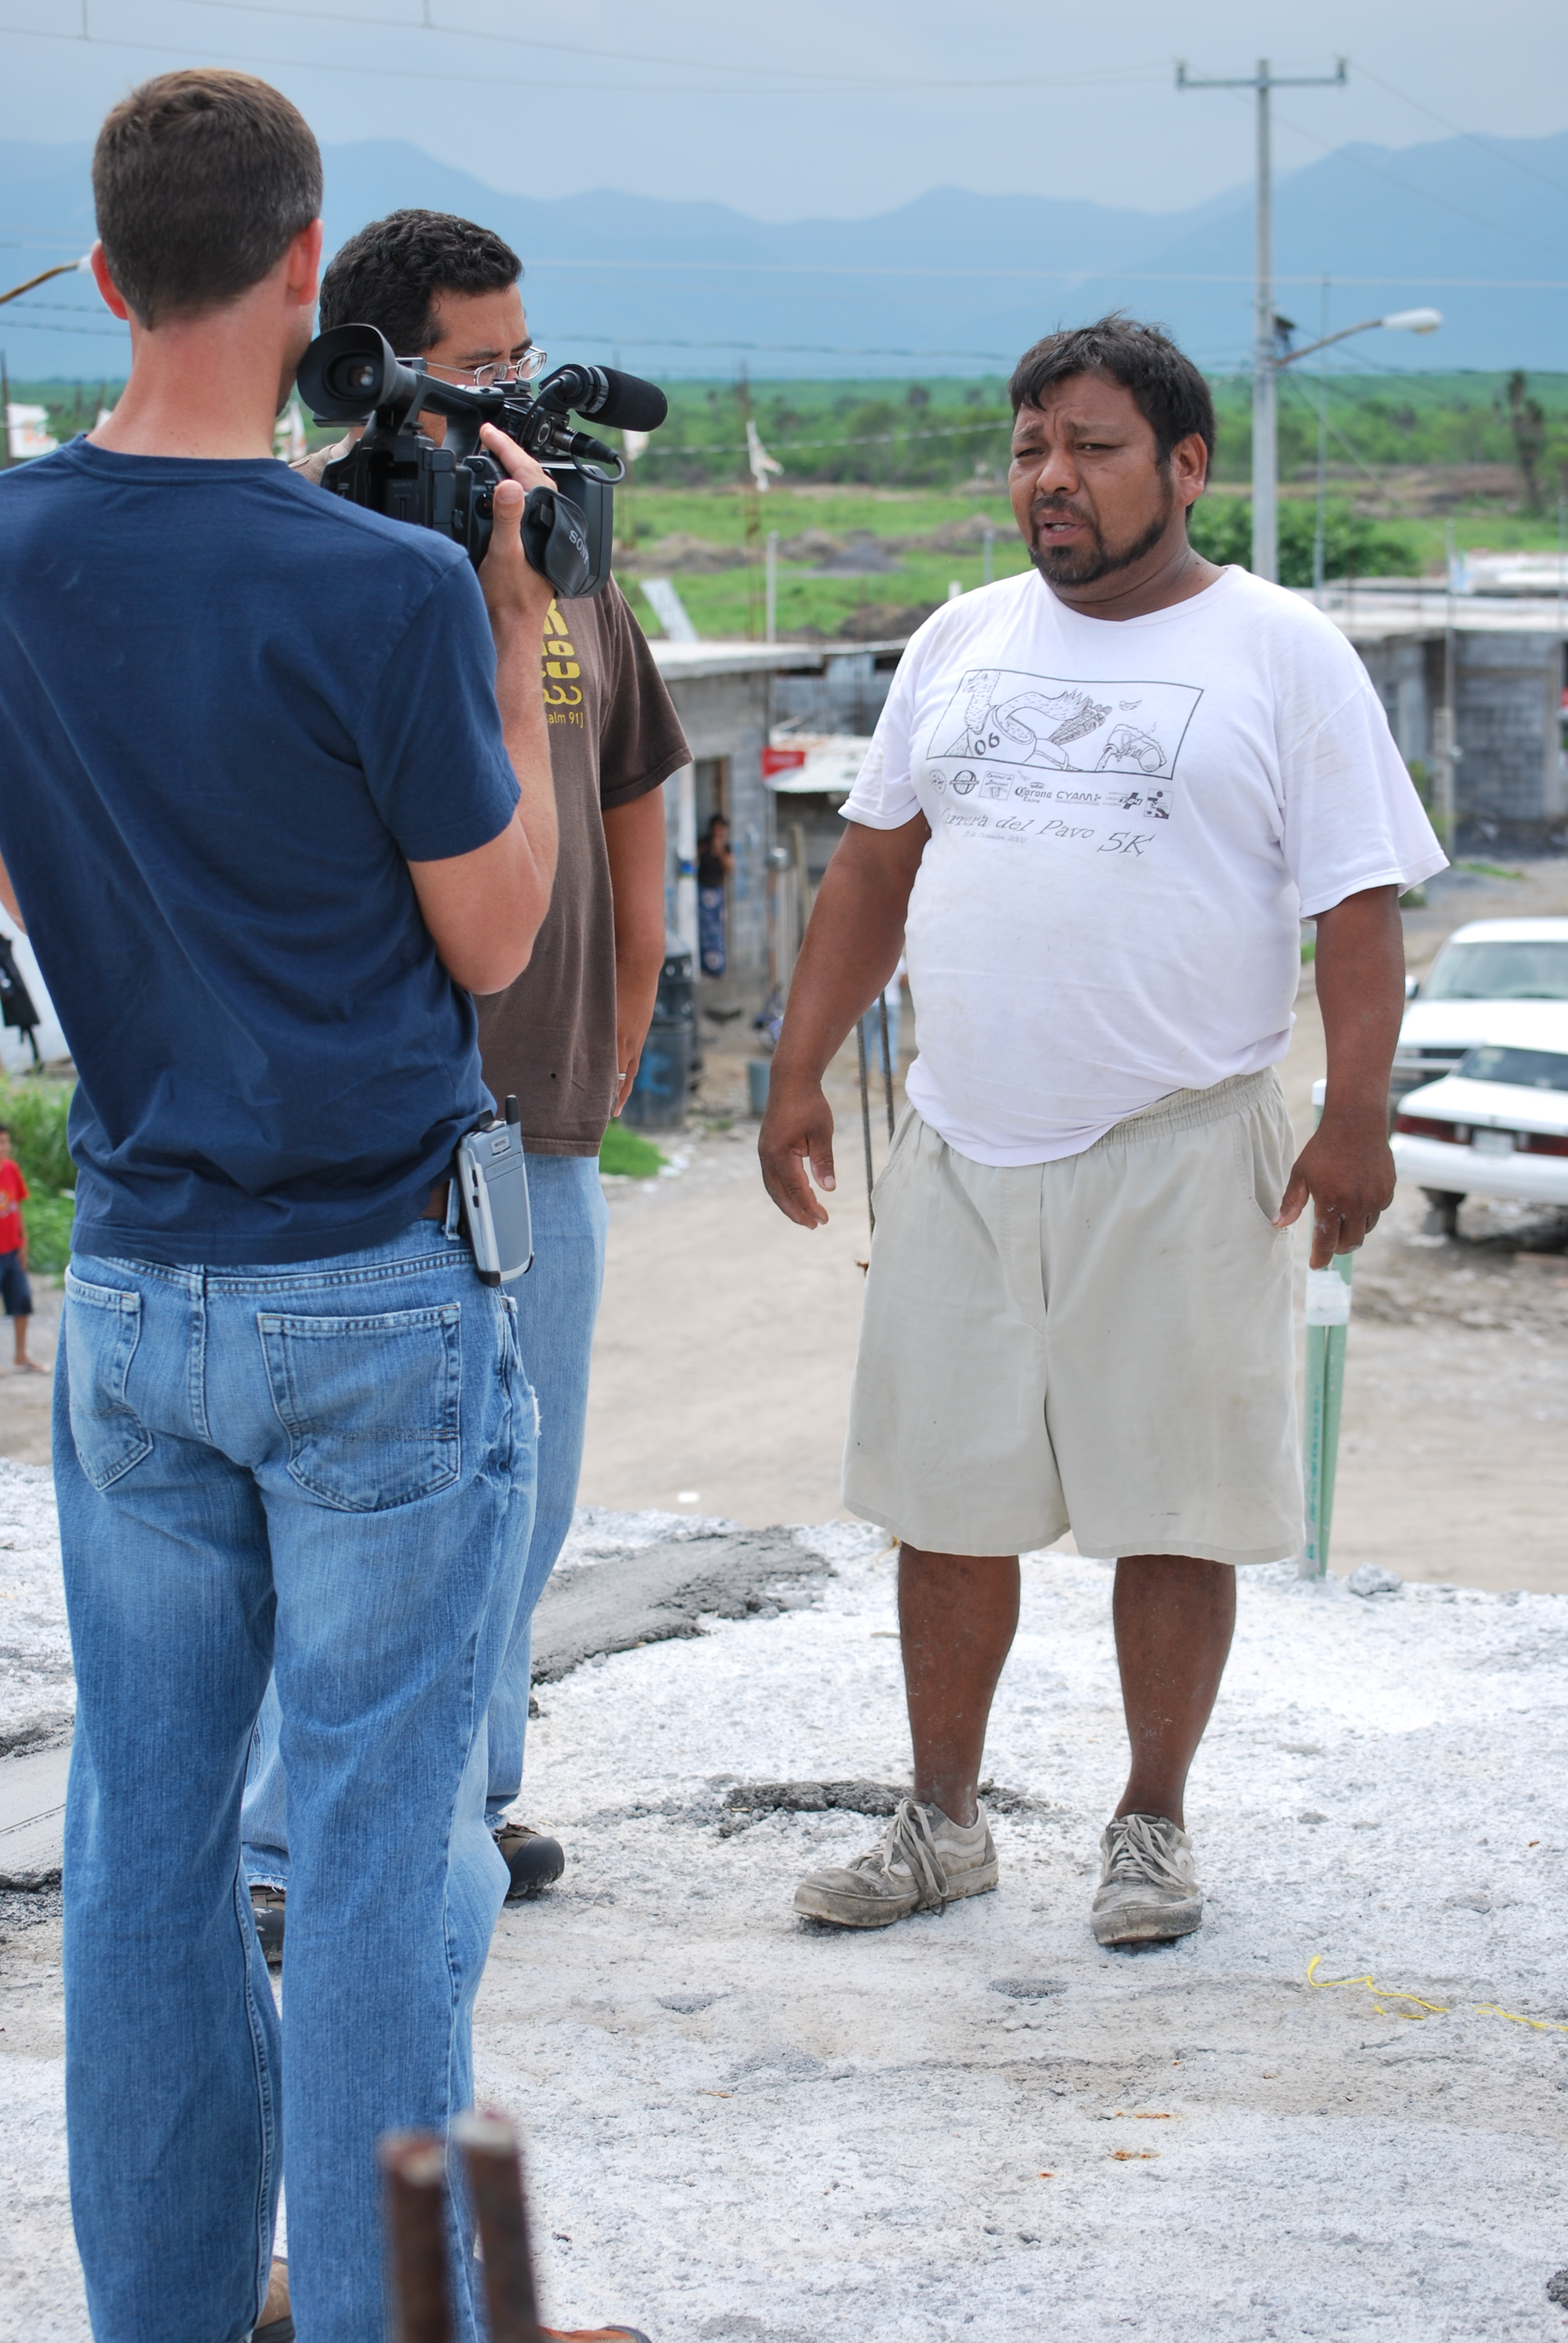 Shooting video footage of Angel, one of our ministry partners at Cadereyta